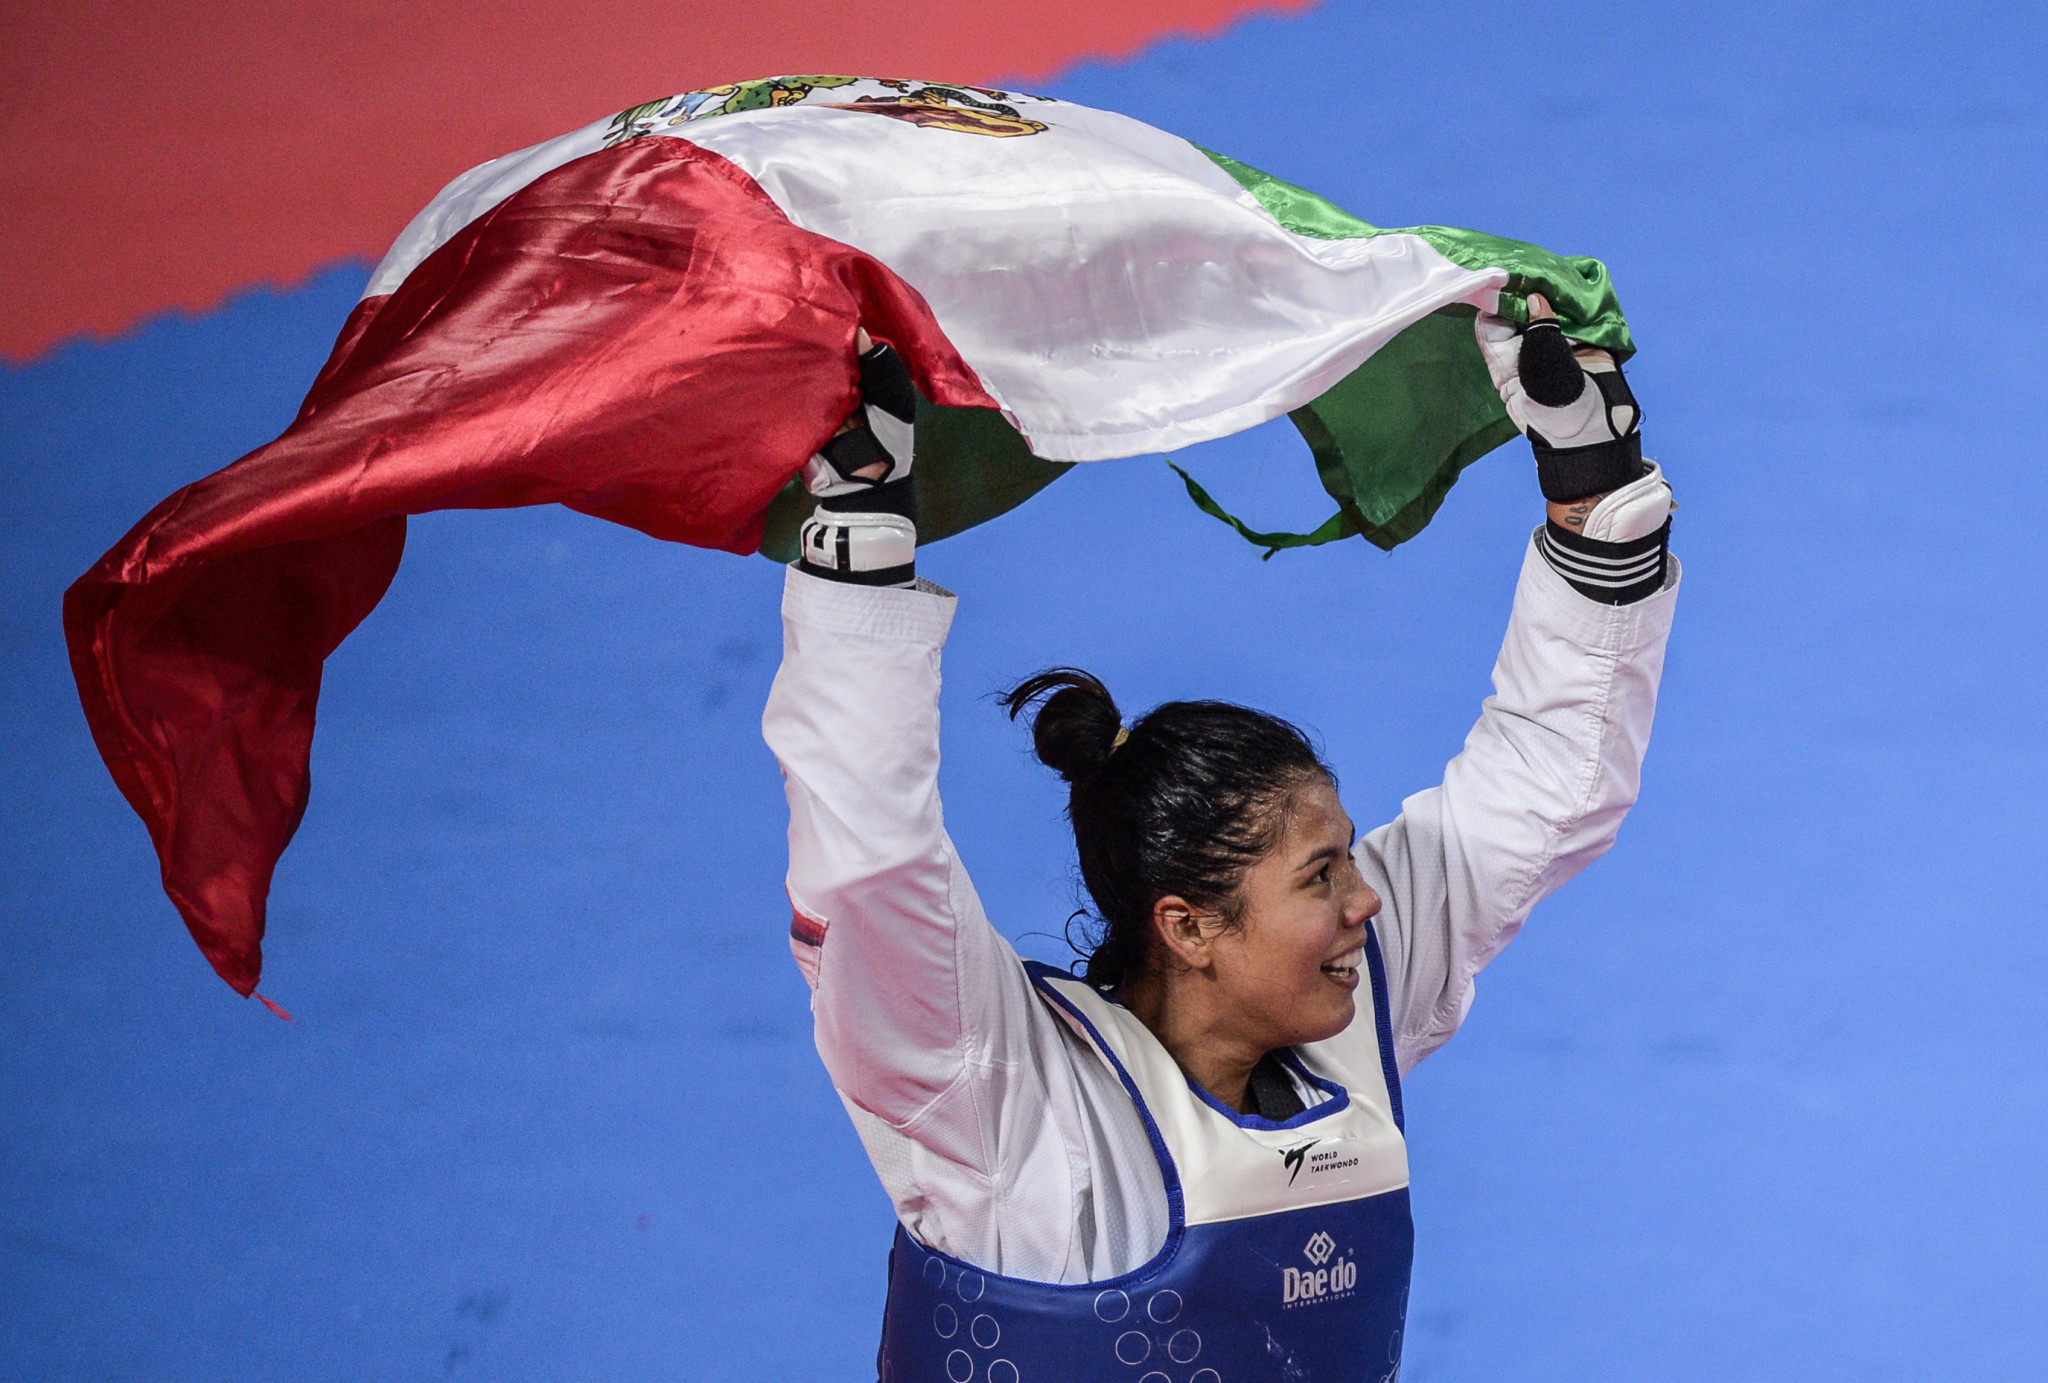 Mexican Taekwondo Federation hold best-of-three competition to select athlete for Tokyo 2020 qualifier